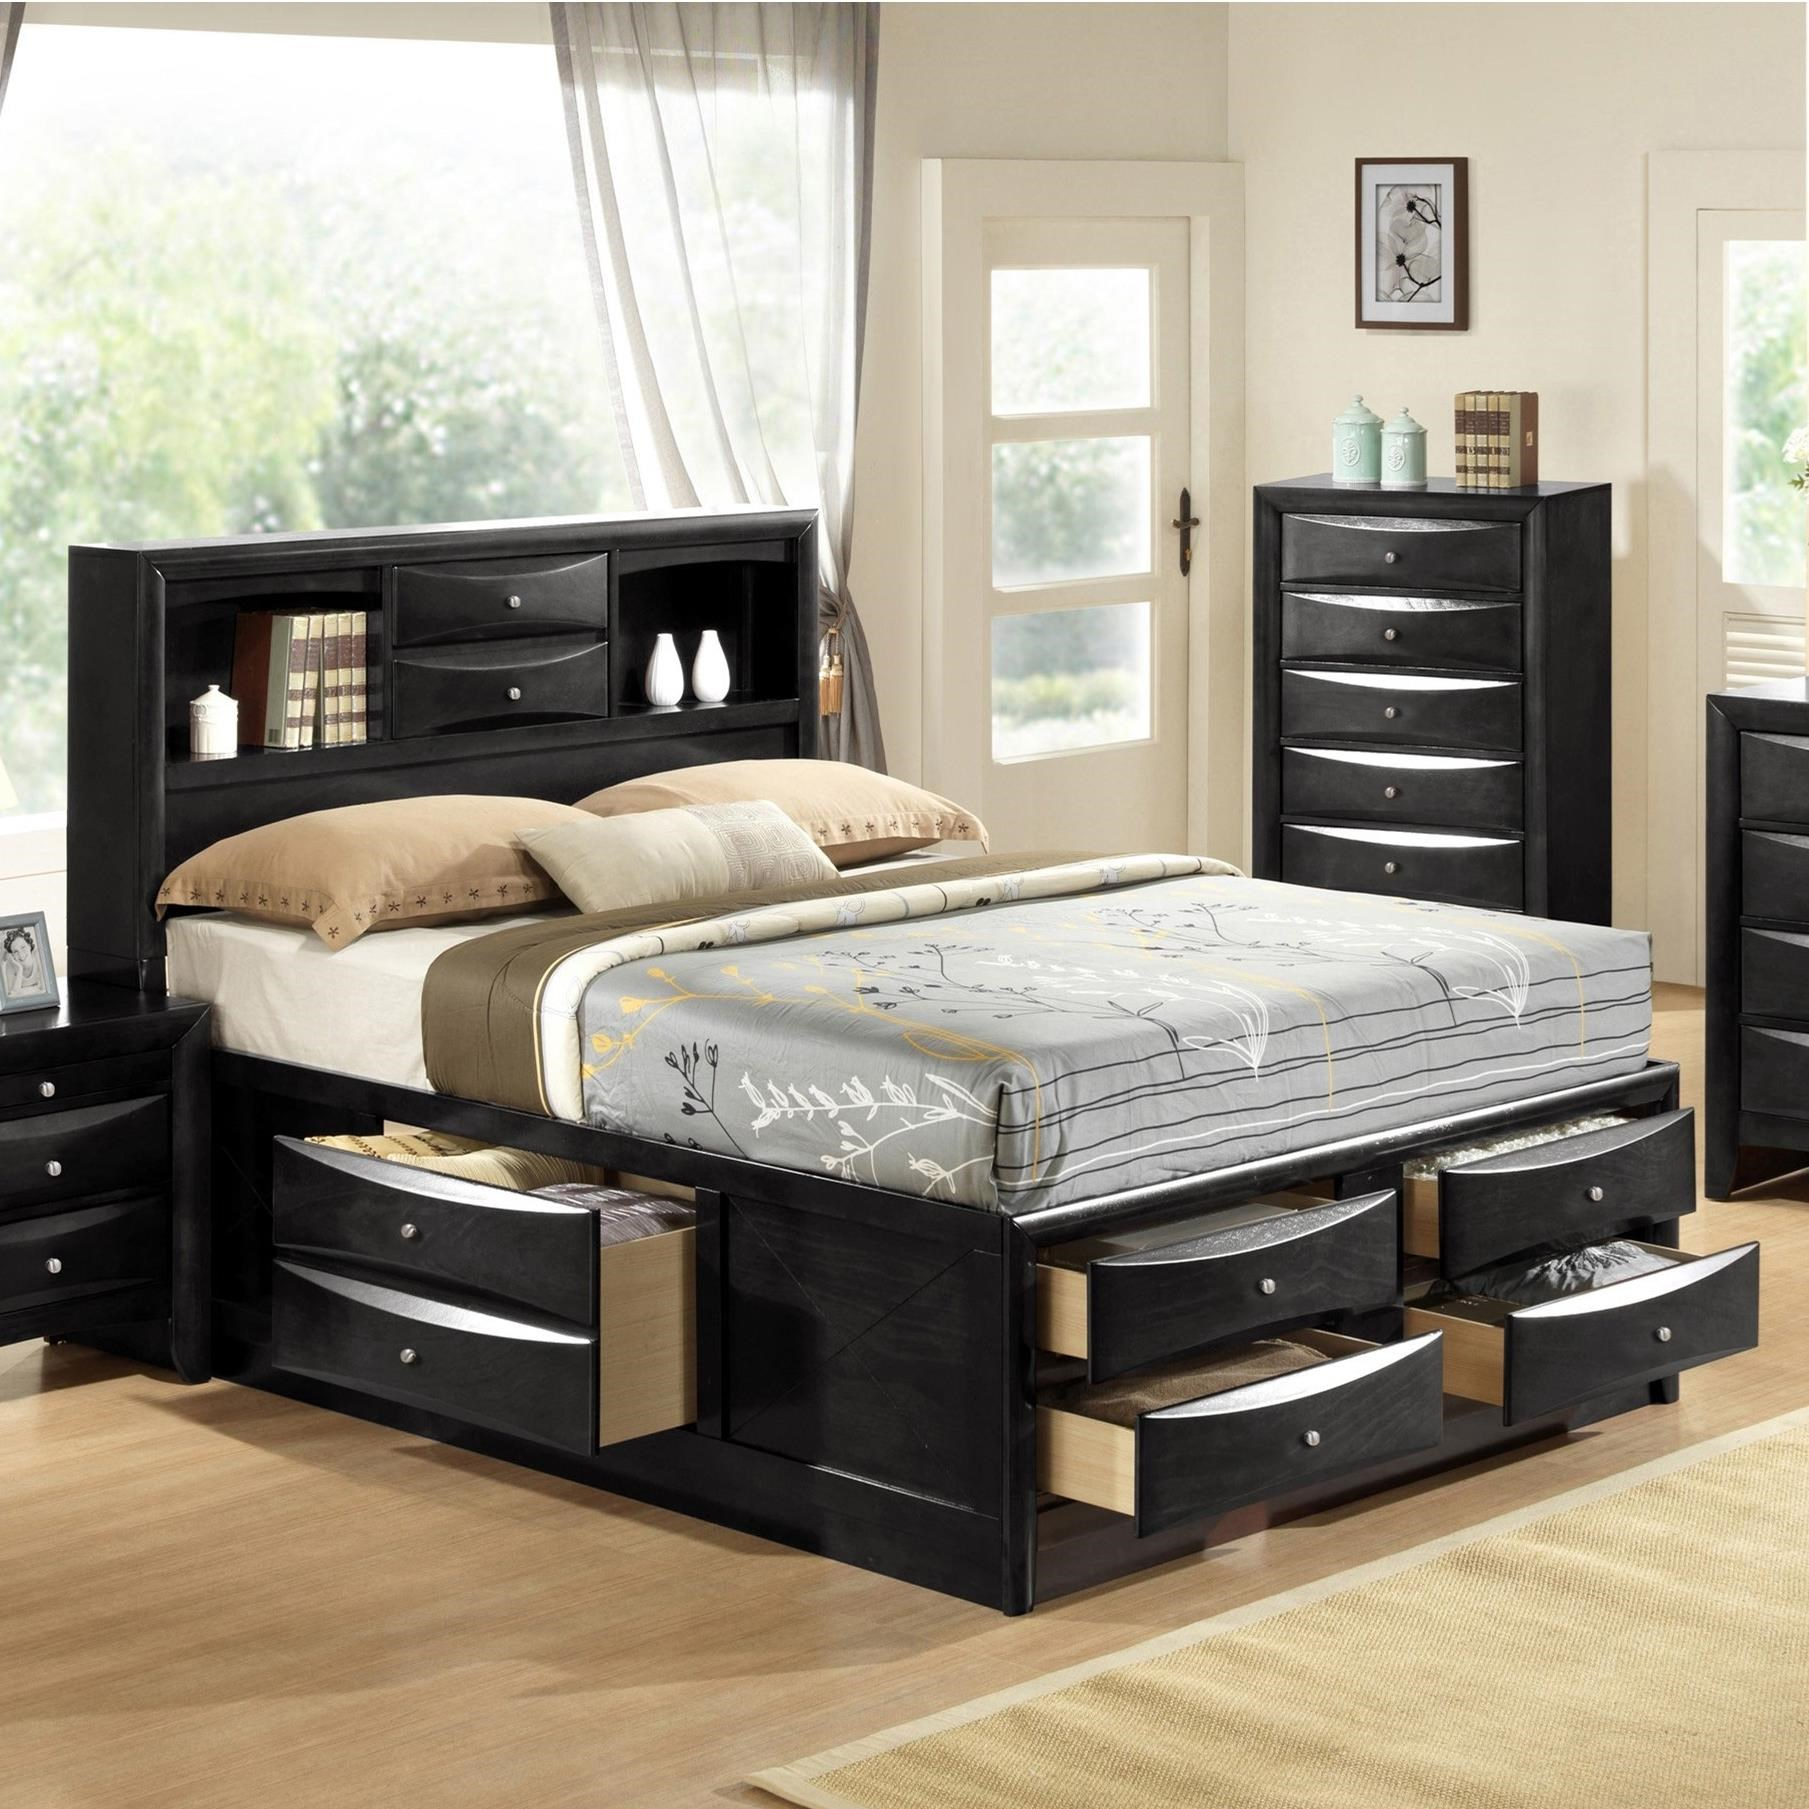 Emily Queen Captain's Bed by Crown Mark at Bullard Furniture